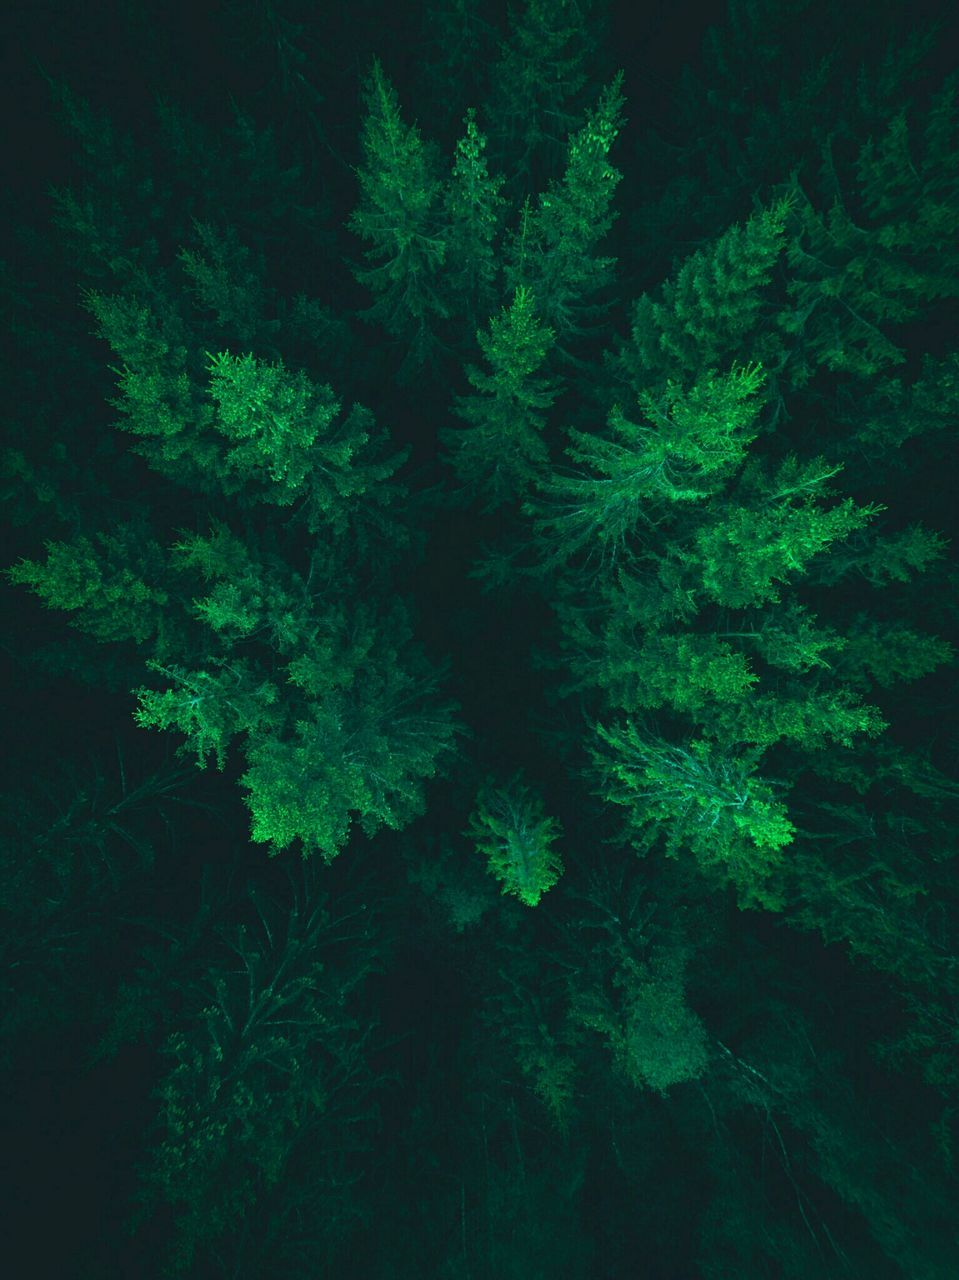 tree, nature, beauty in nature, green color, winter, fir tree, branch, no people, night, christmas, tranquility, forest, treetop, christmas tree, backgrounds, cold temperature, outdoors